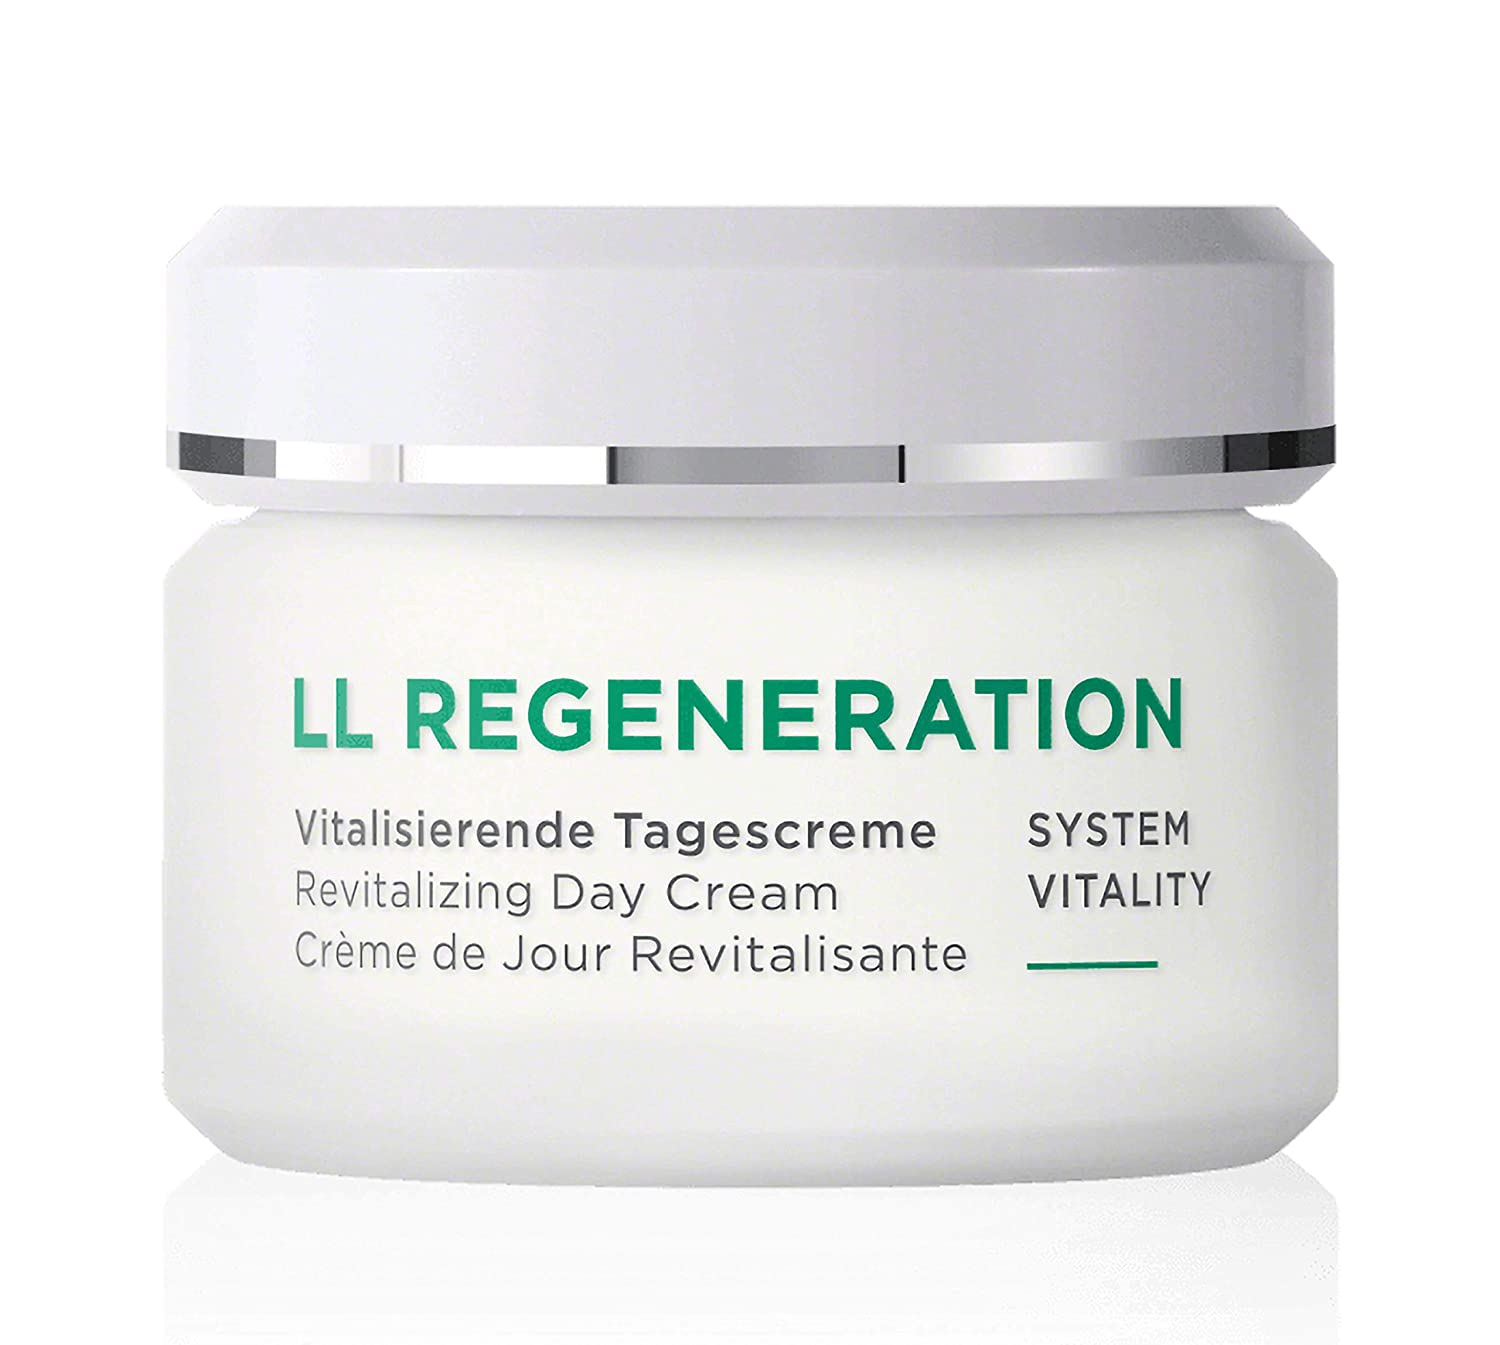 ANNEMARIE BÖRLIND – LL REGENERATION Revitalizing Day Cream – Sustainably Sourced Natural Anti-Aging Facial Moisturizer for a Visibly Firmer and Revitalized Skin – Step 3 of 5 – 1.69 oz.